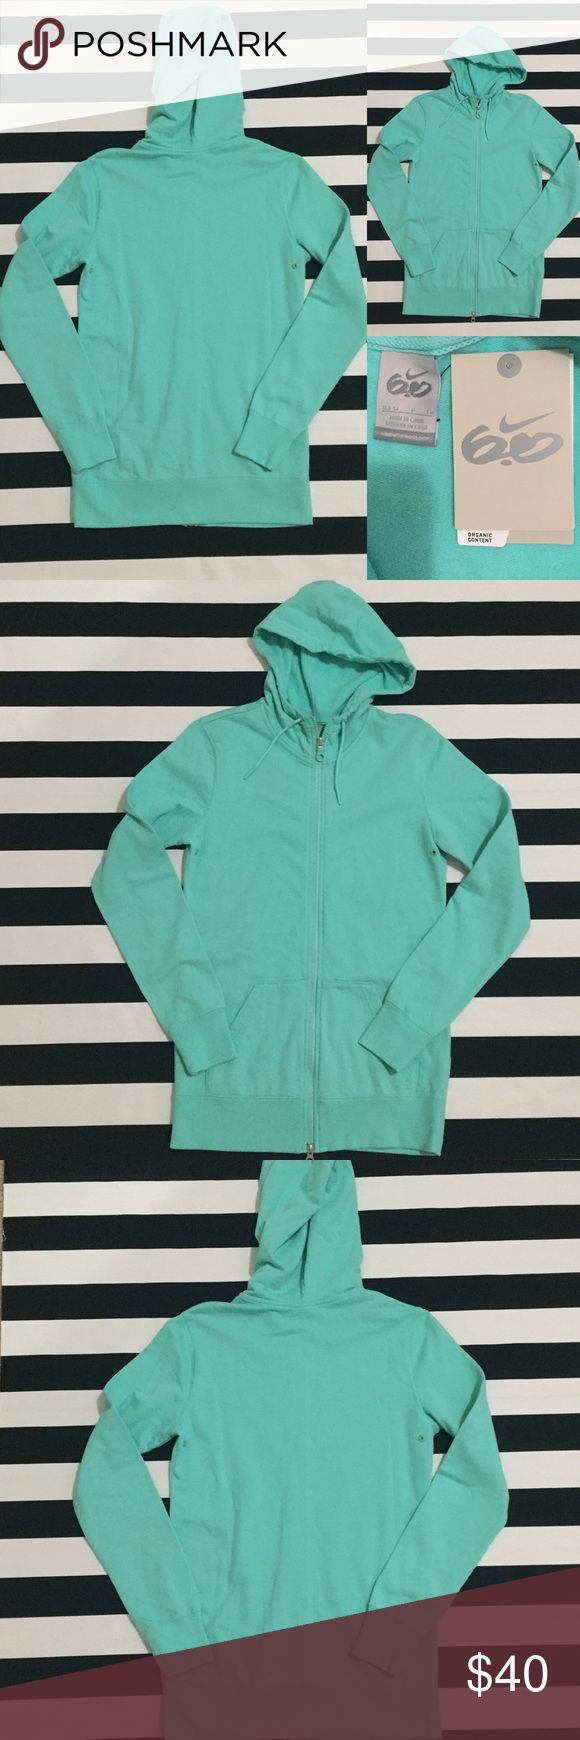 NWT[Nike] women's zip up 6.0 hoodie sweatshirt szS NWT[Nike] women's zip up 6.0 hoodie sweatshirt szS •🆕listing •NWT, new with tags condition •teal/mint green color •zip up style, hooded, 2 front pockets •material 96% organic cotton 4% spandex, interior very soft fleece •offers welcomed using the offer feature or bundle for the best discount• Nike Tops Sweatshirts & Hoodies